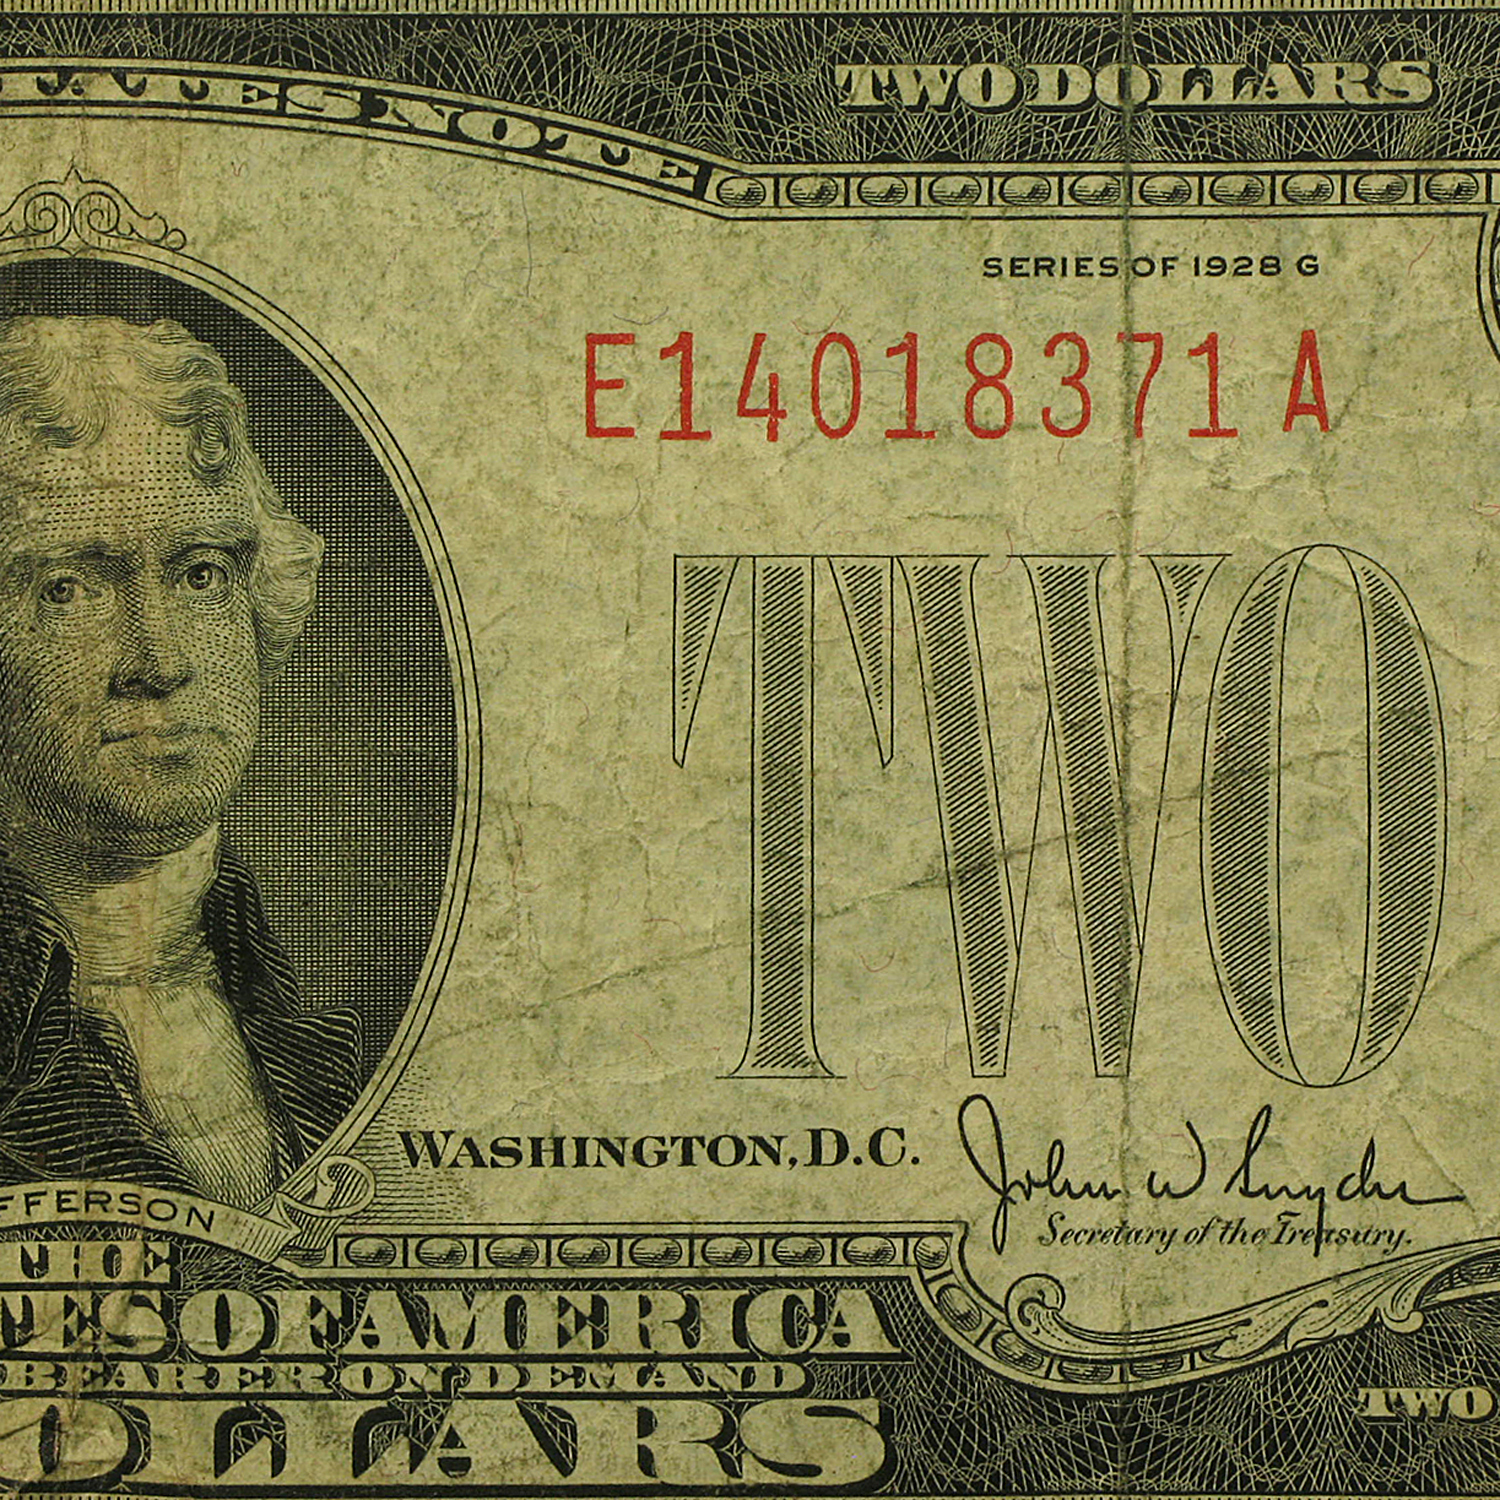 1928 thru 1928-G $2.00 U.S. Notes Red Seal Cull/Good